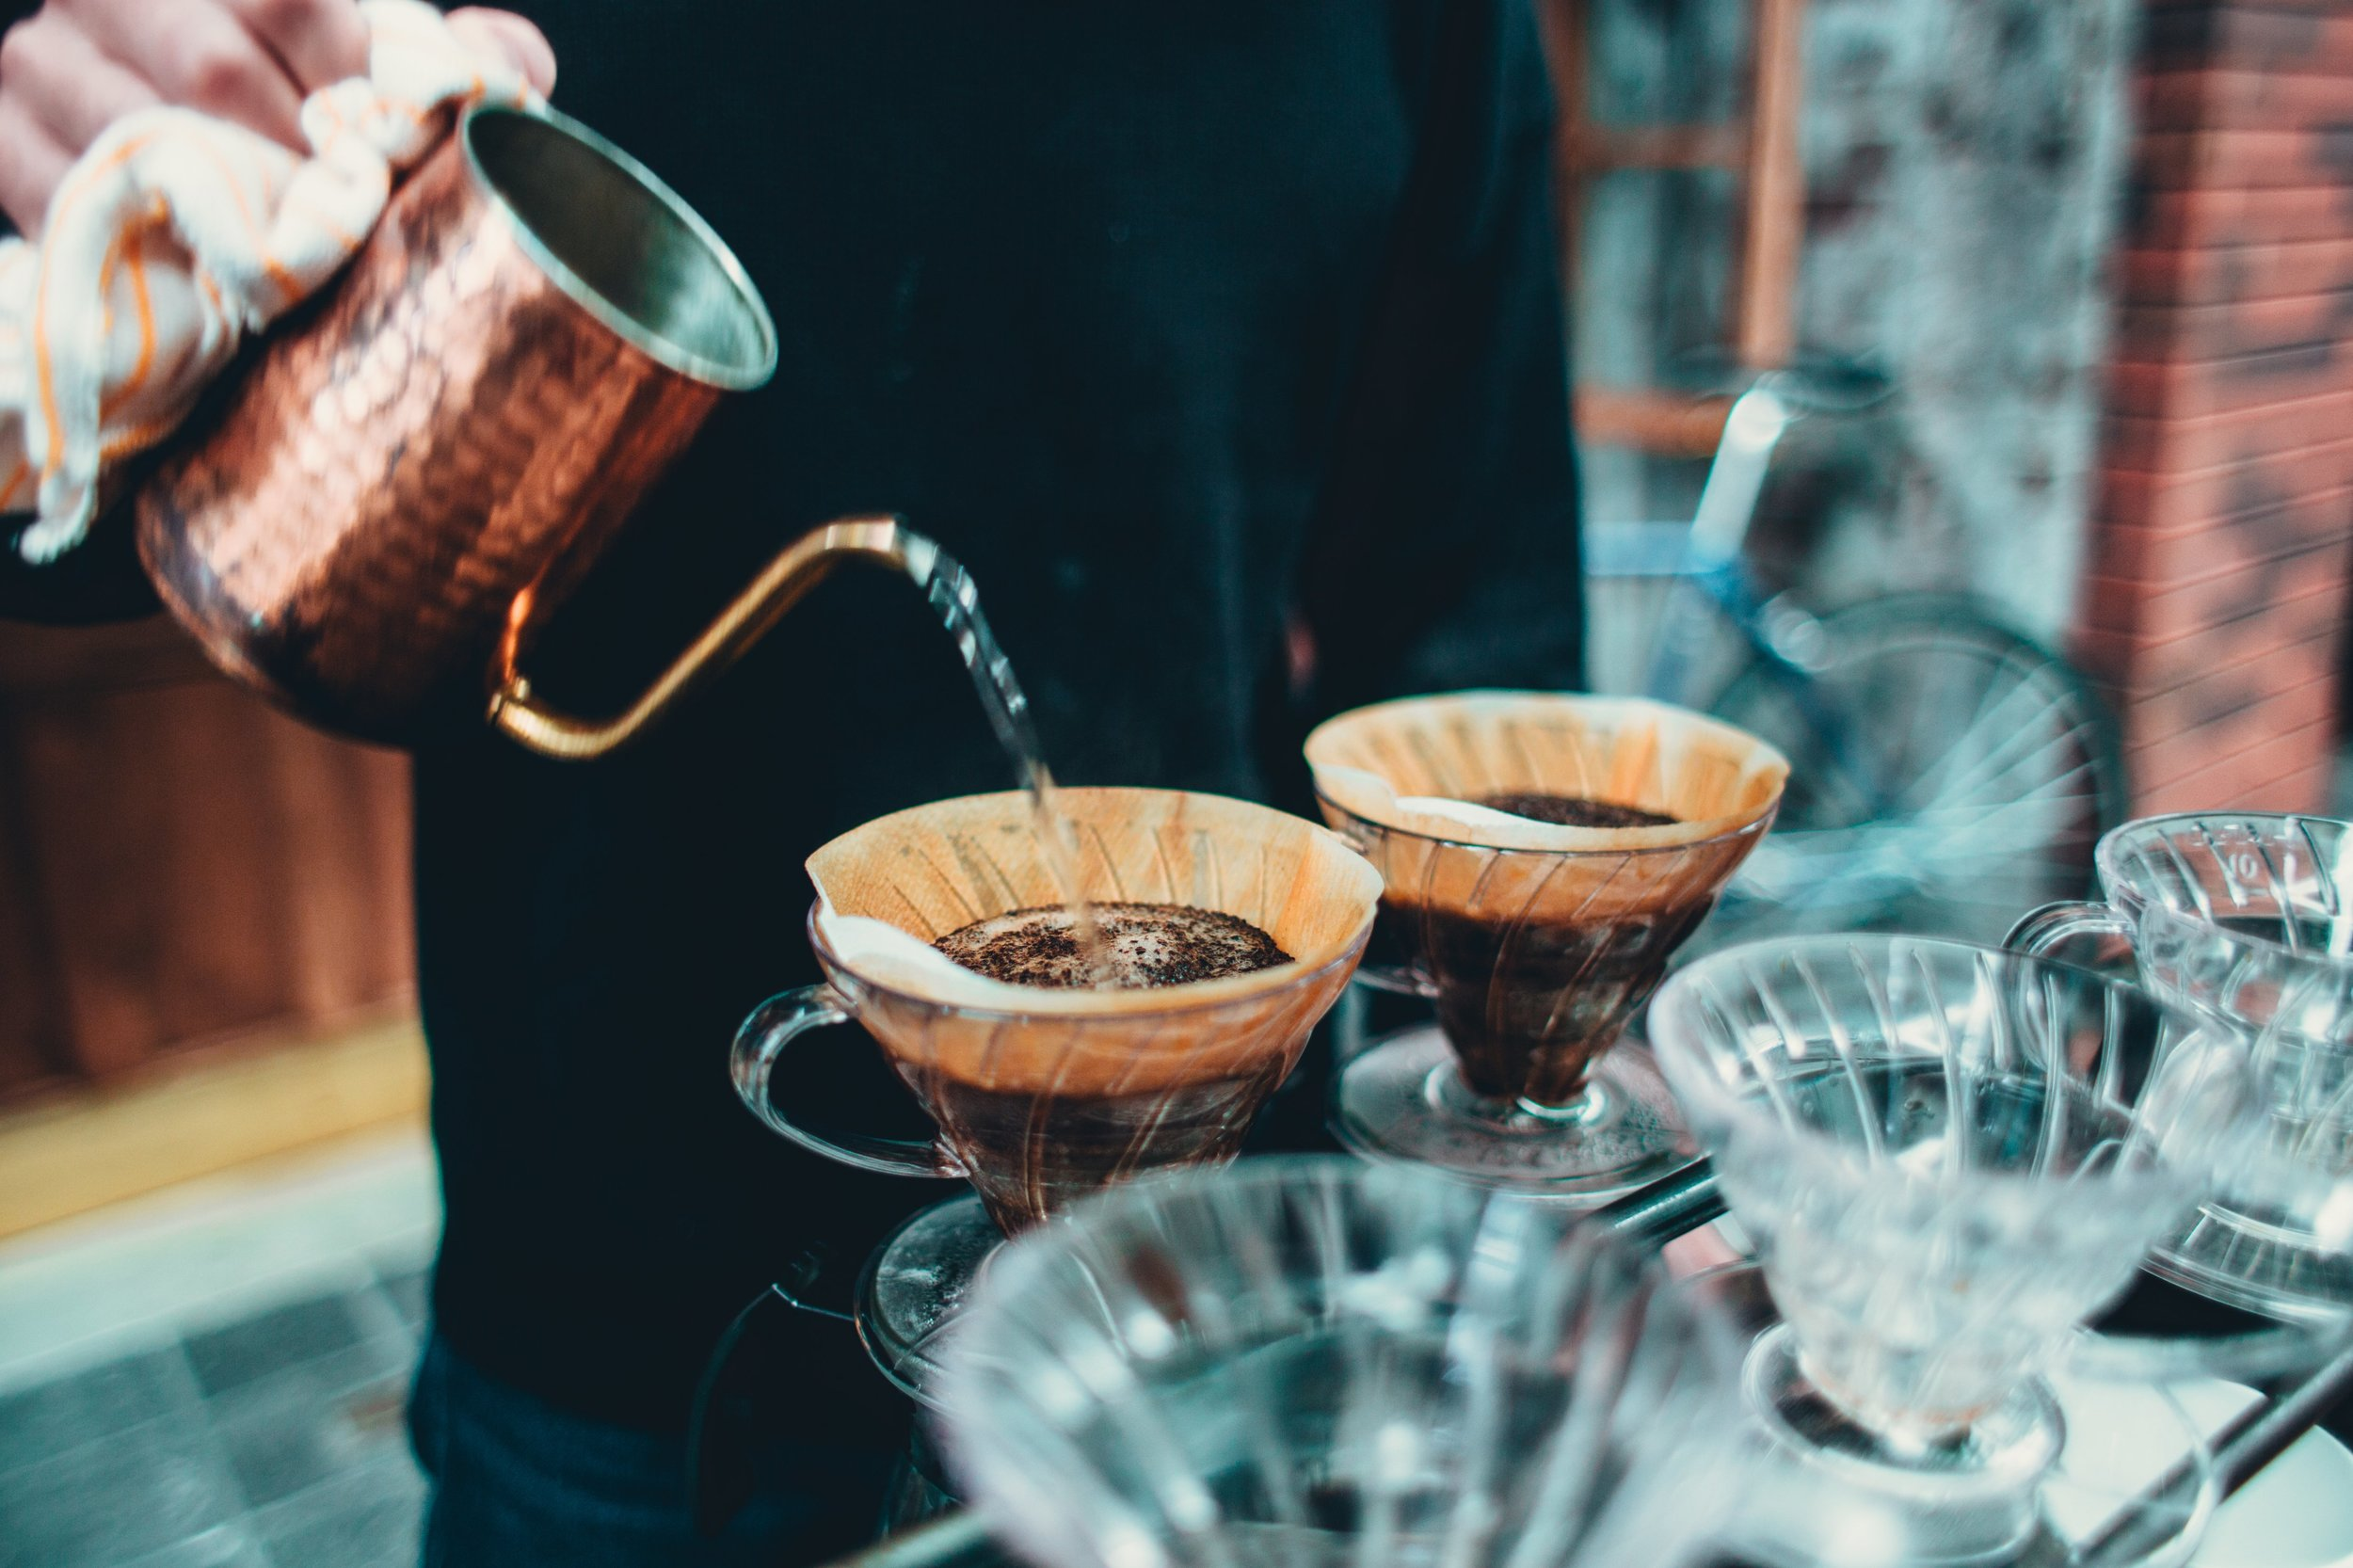 Shop Equipment - Look no further, we have everything you need to brew